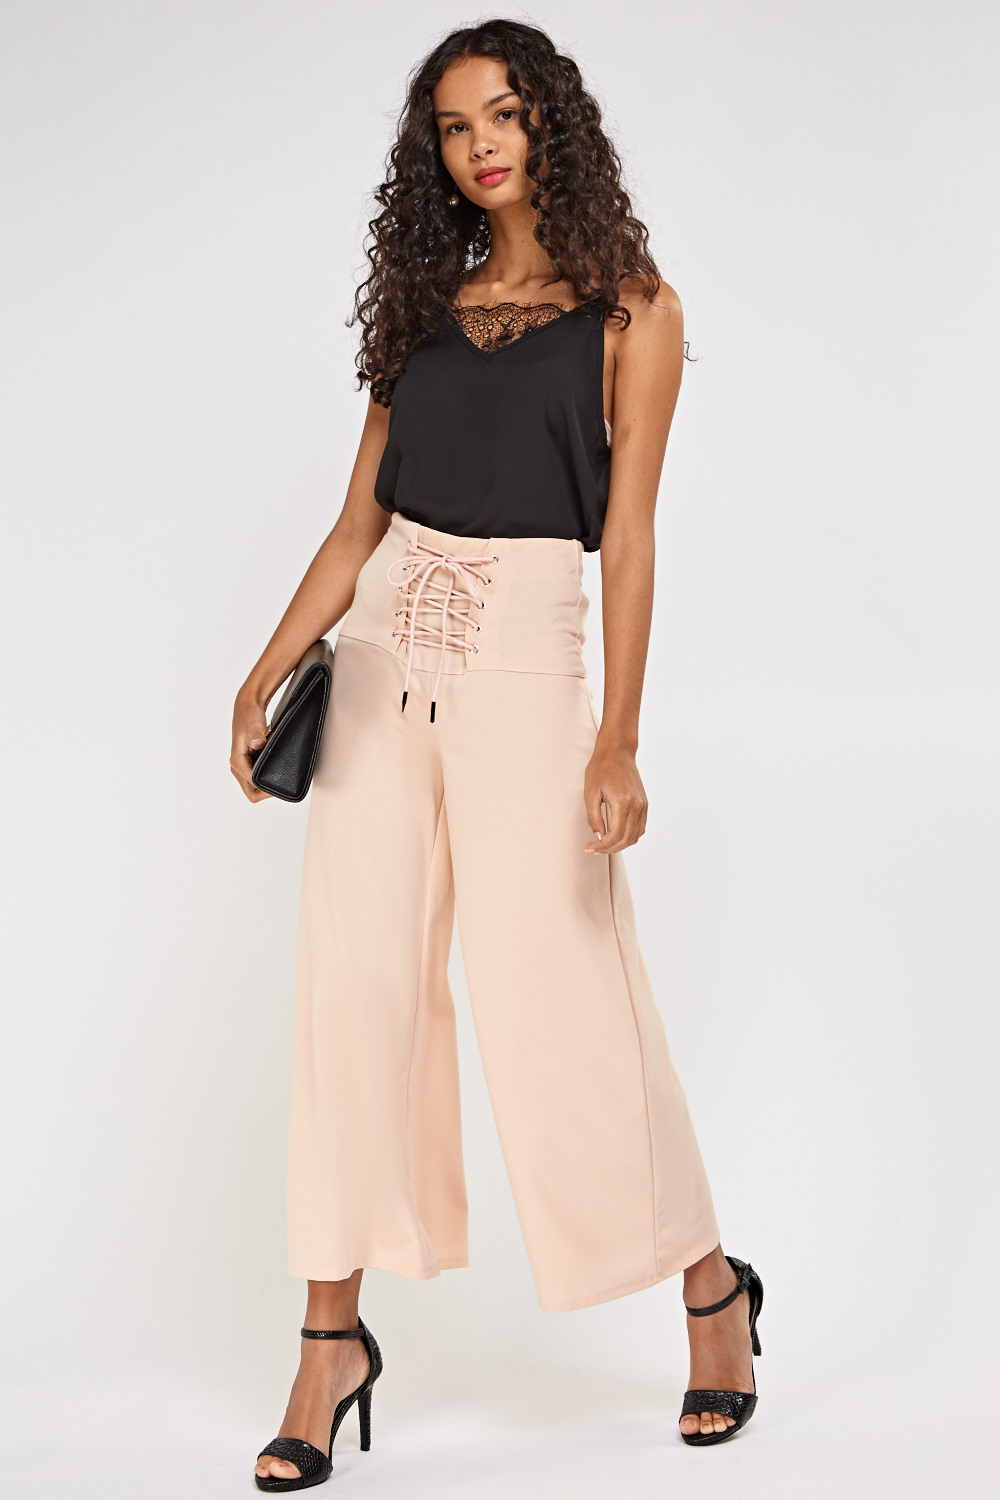 c10db8b1ca High Waist Lace Up Wide Leg Trousers - Just £5